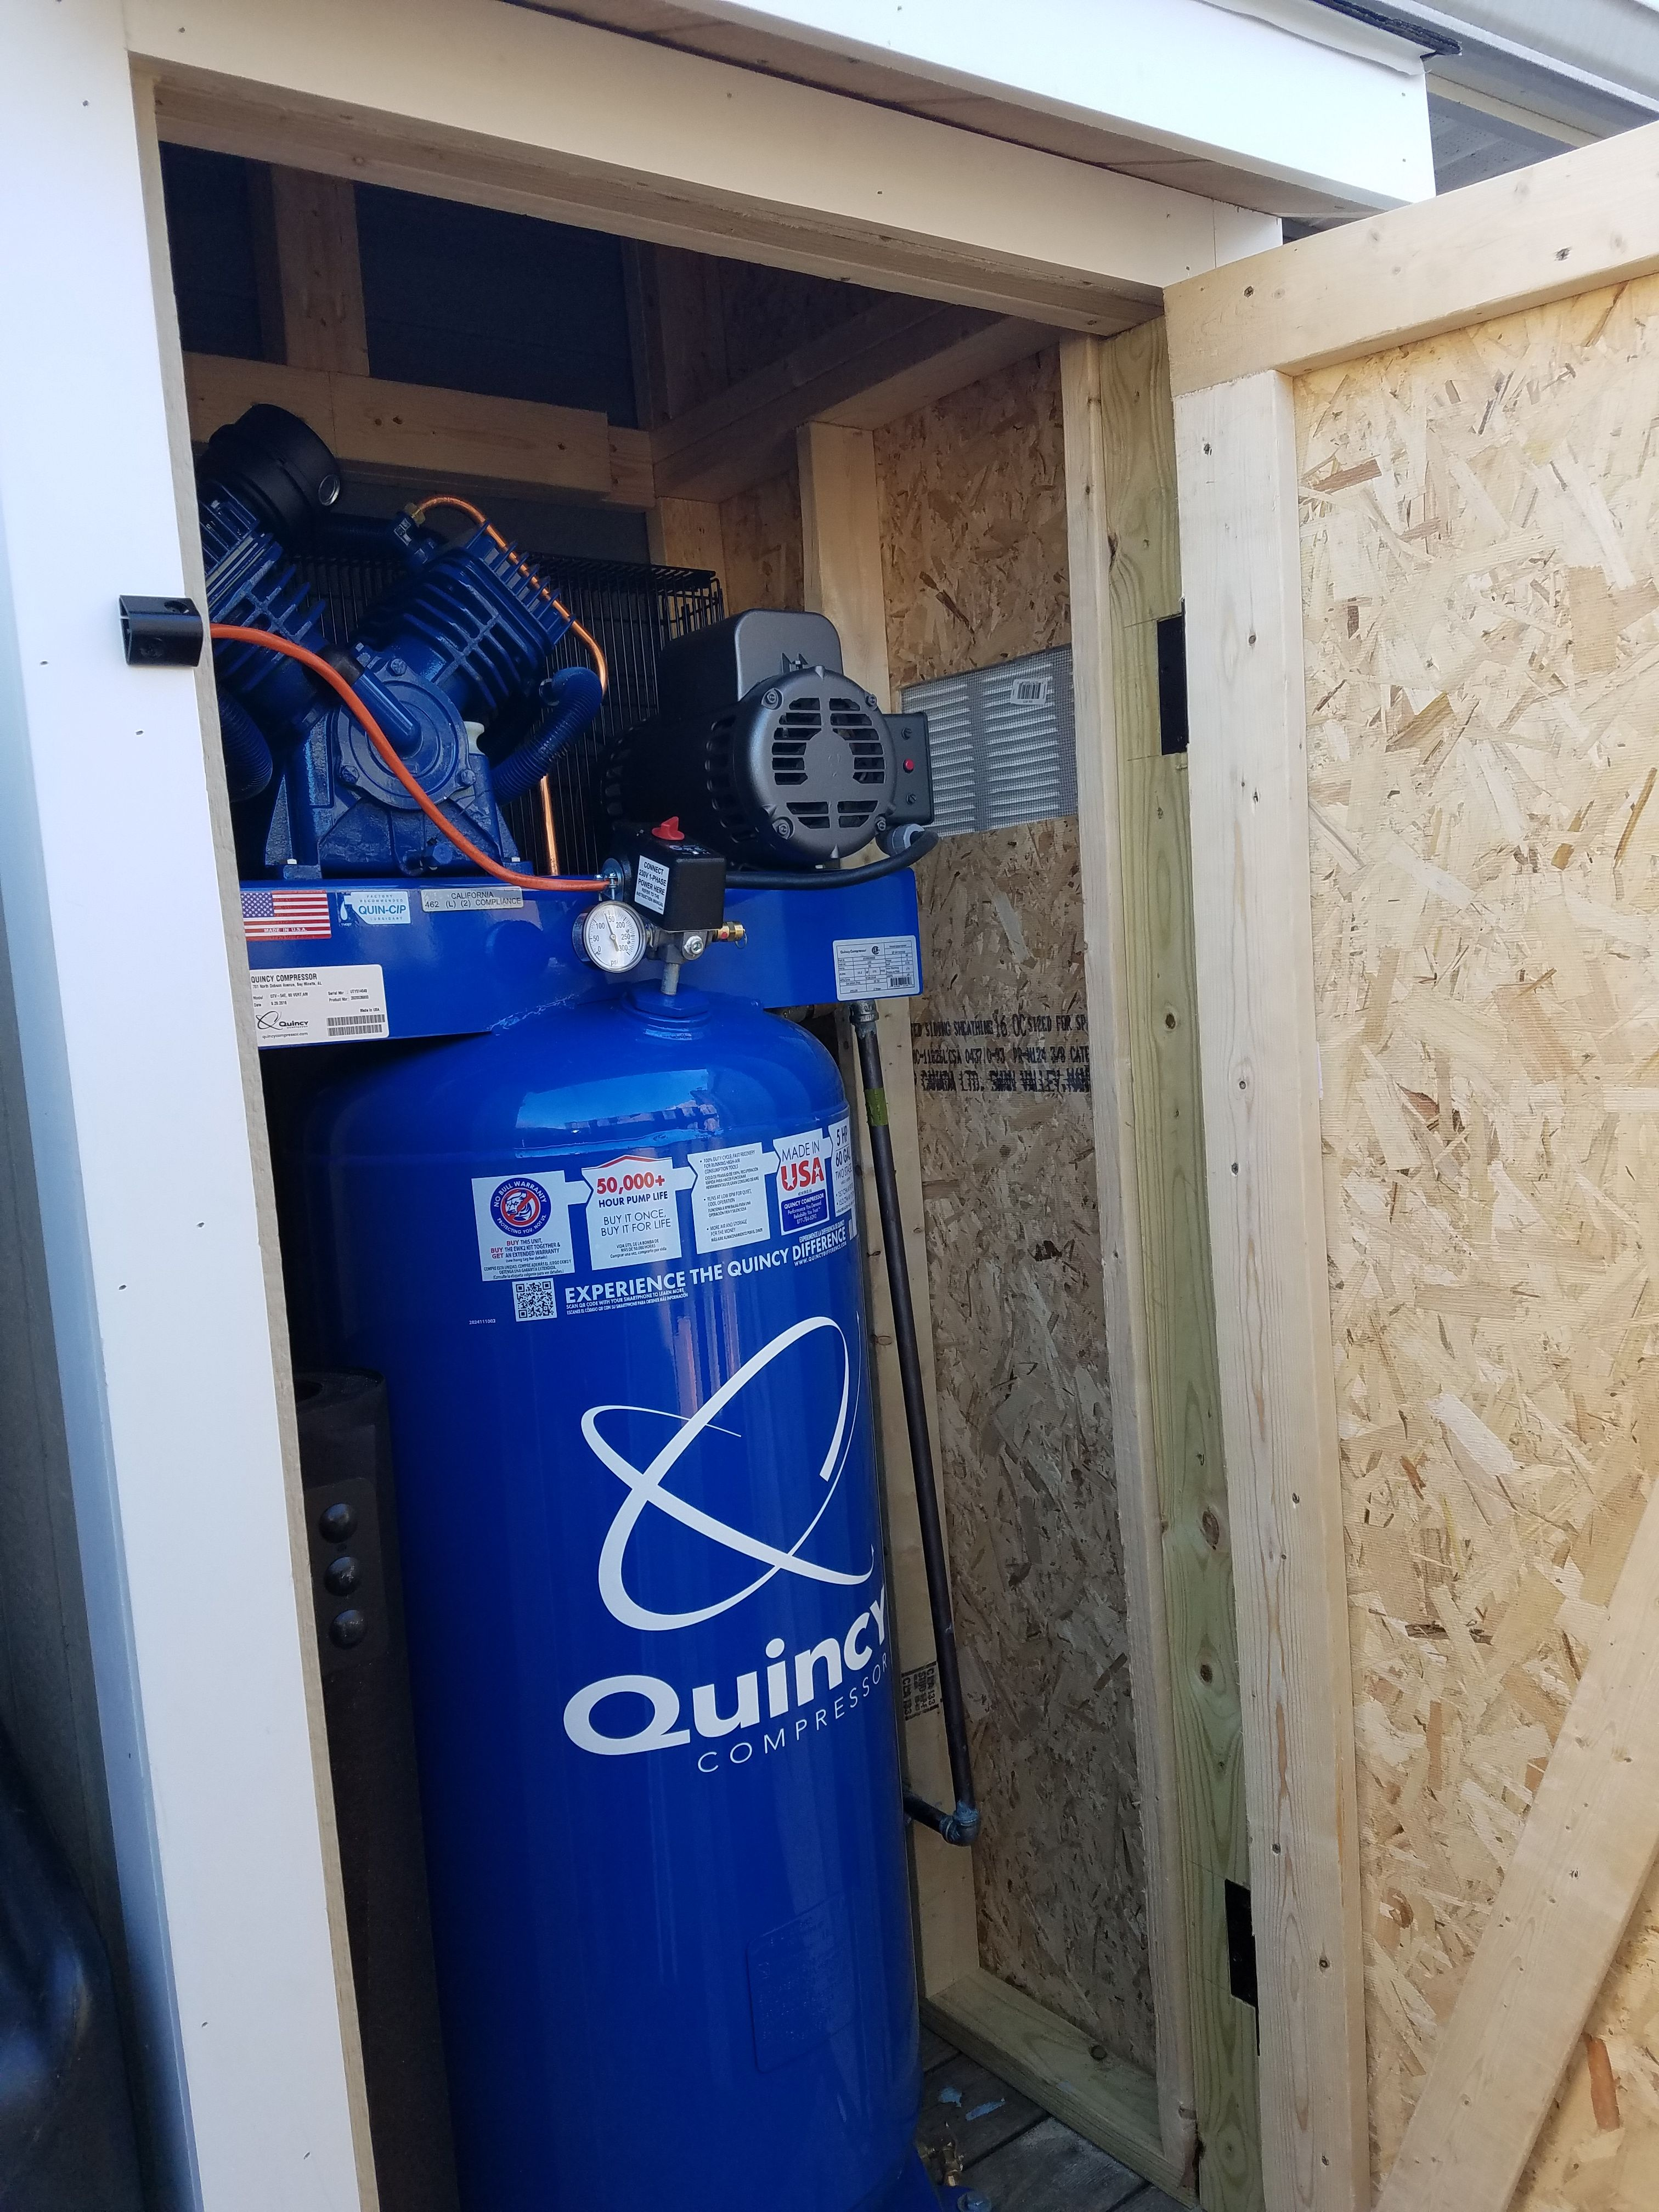 Air Compressor Storage Shed Quincy 60 gal, 230V, 5HP